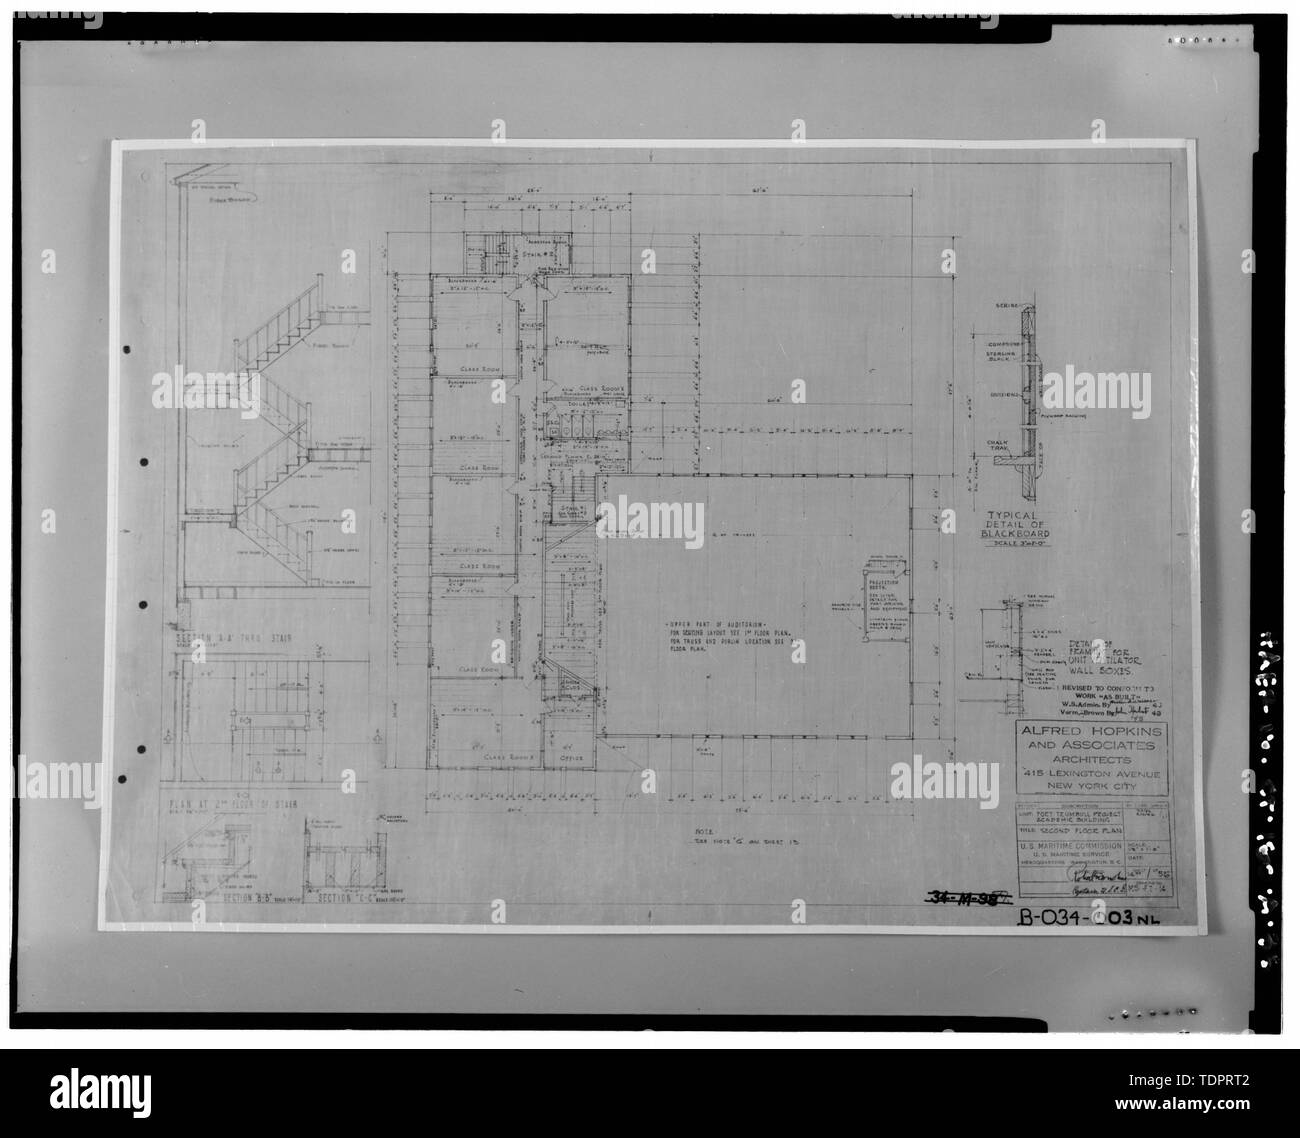 Photographic copy of second floor plan of Bowditch Hall, Alfred Hopkins and Associates, 1943. Drawing on file at Caretaker Site Office, Naval Undersea Warfare Center, New London. Copyright-free. - Naval Undersea Warfare Center, Bowditch Hall, 600 feet east of Smith Street and 350 feet south of Columbia Cove, West bank of Thames River, New London, New London County, CT - Stock Image